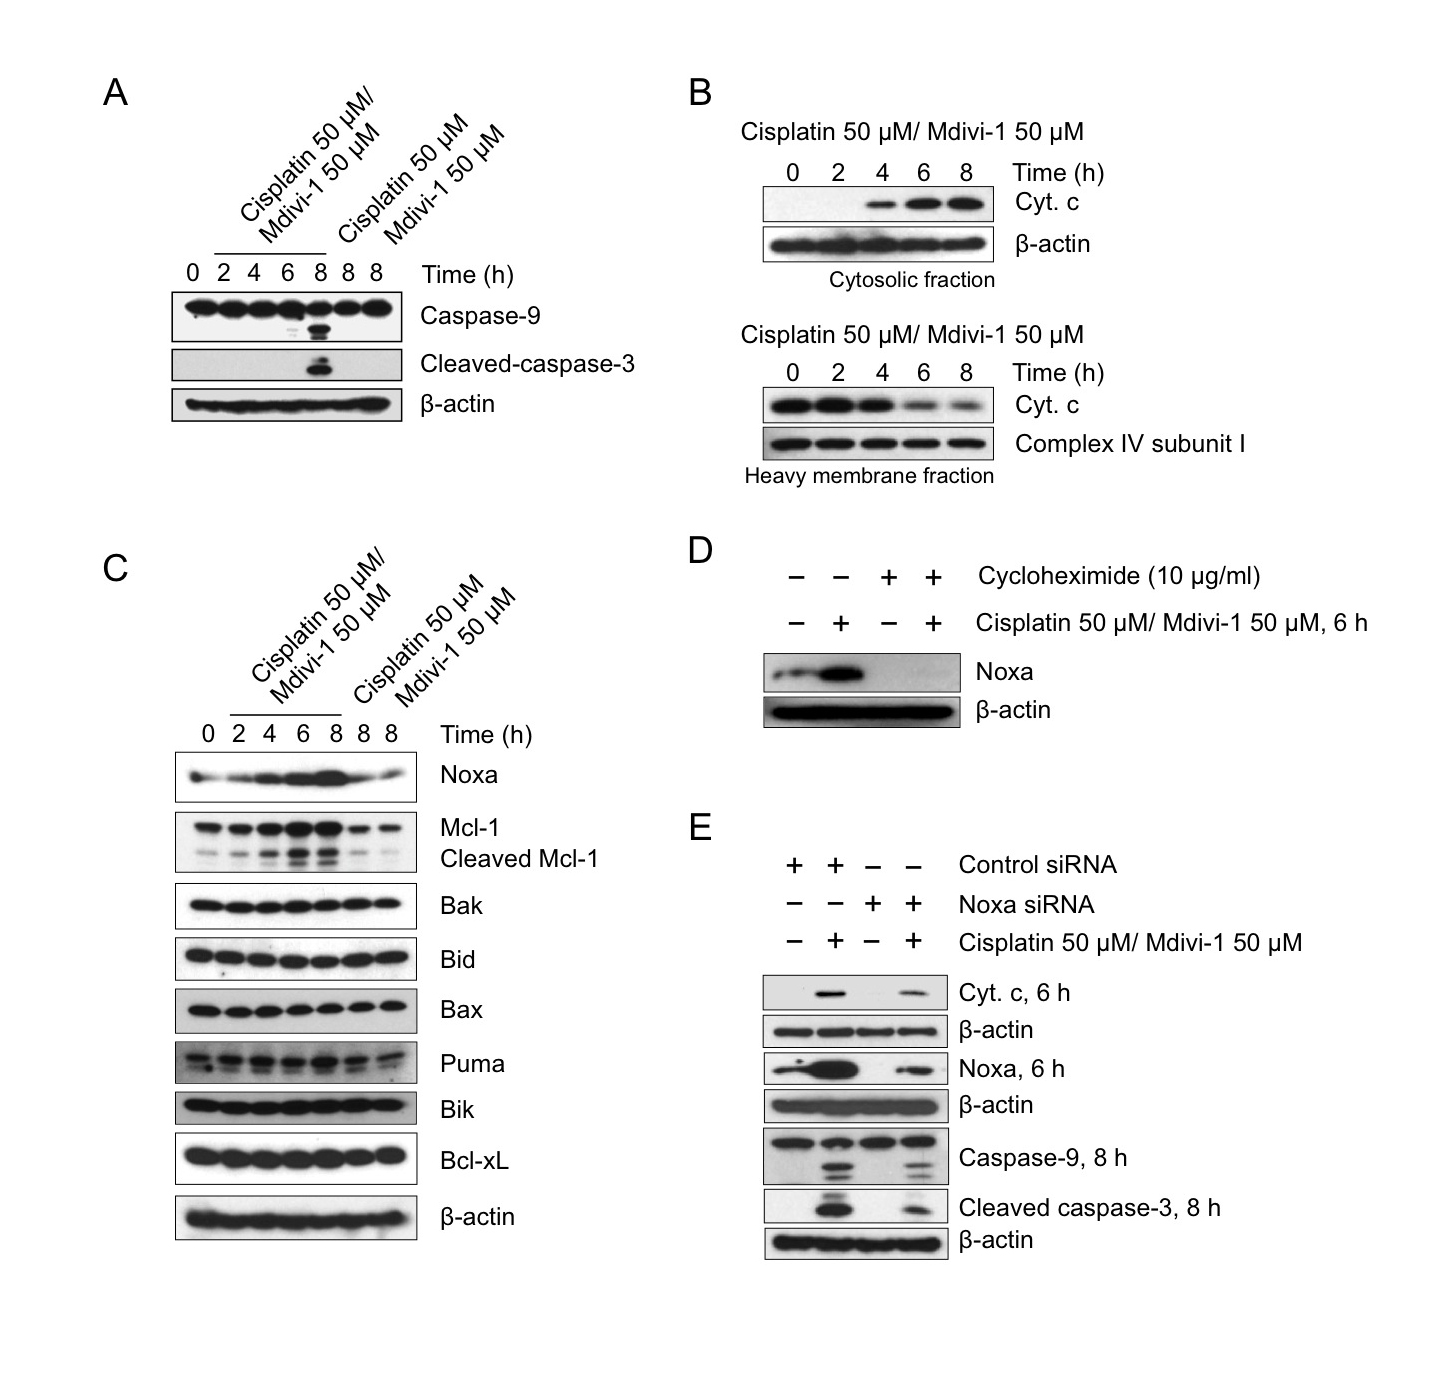 The combination of cisplatin and mdivi-1 preferentially upregulates Noxa and enhances subsequent mitochondrial apoptotic signaling (A) H1299 cells were treated with cisplatin alone, mdivi-1 alone, or the combination of cisplatin and mdivi-1 as indicated.